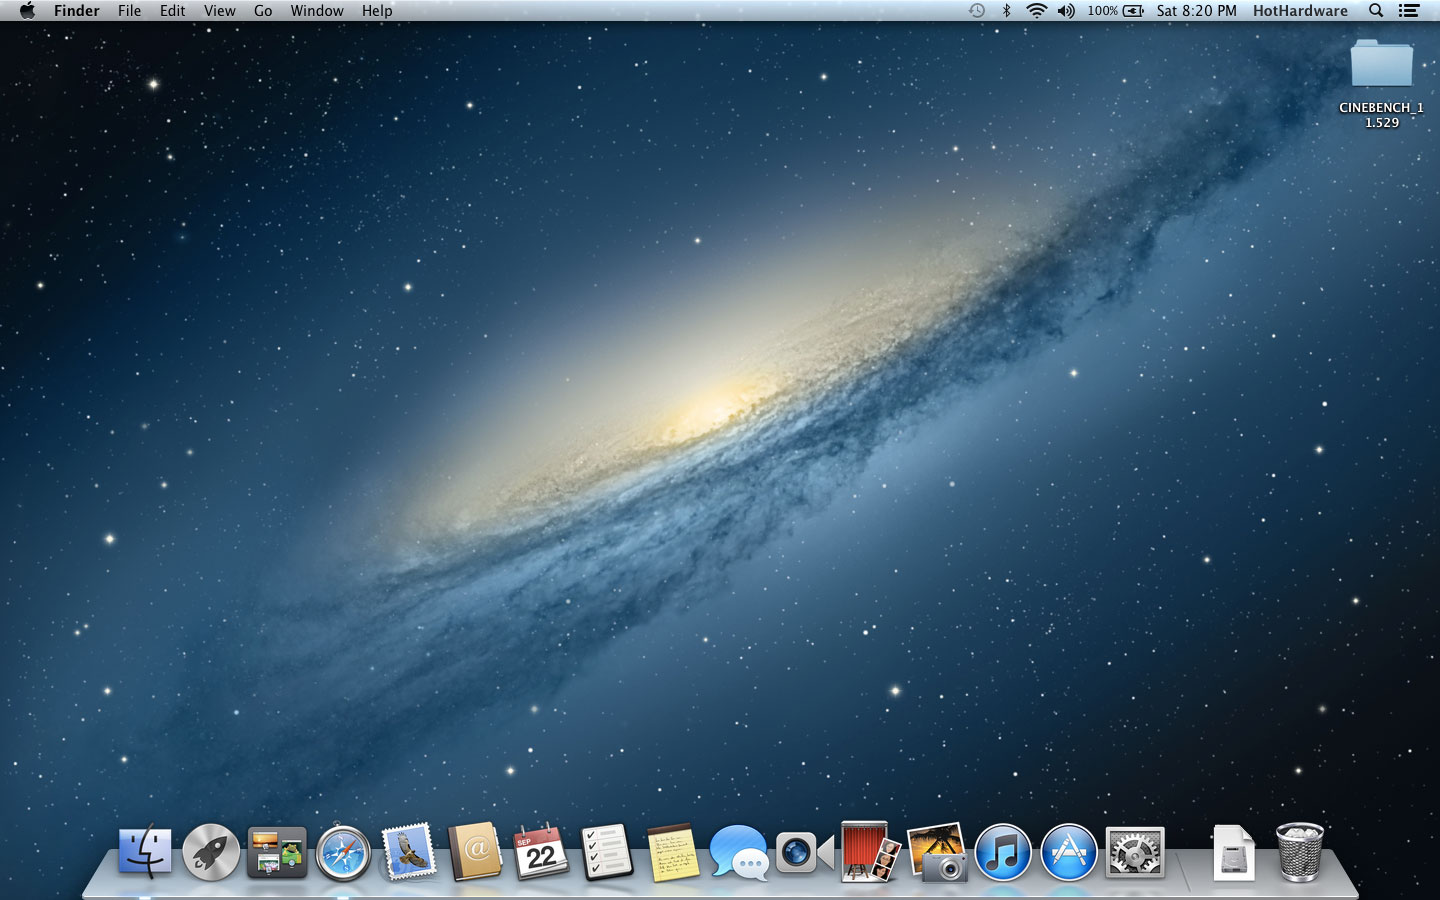 big_macbook_air_desktop.jpg